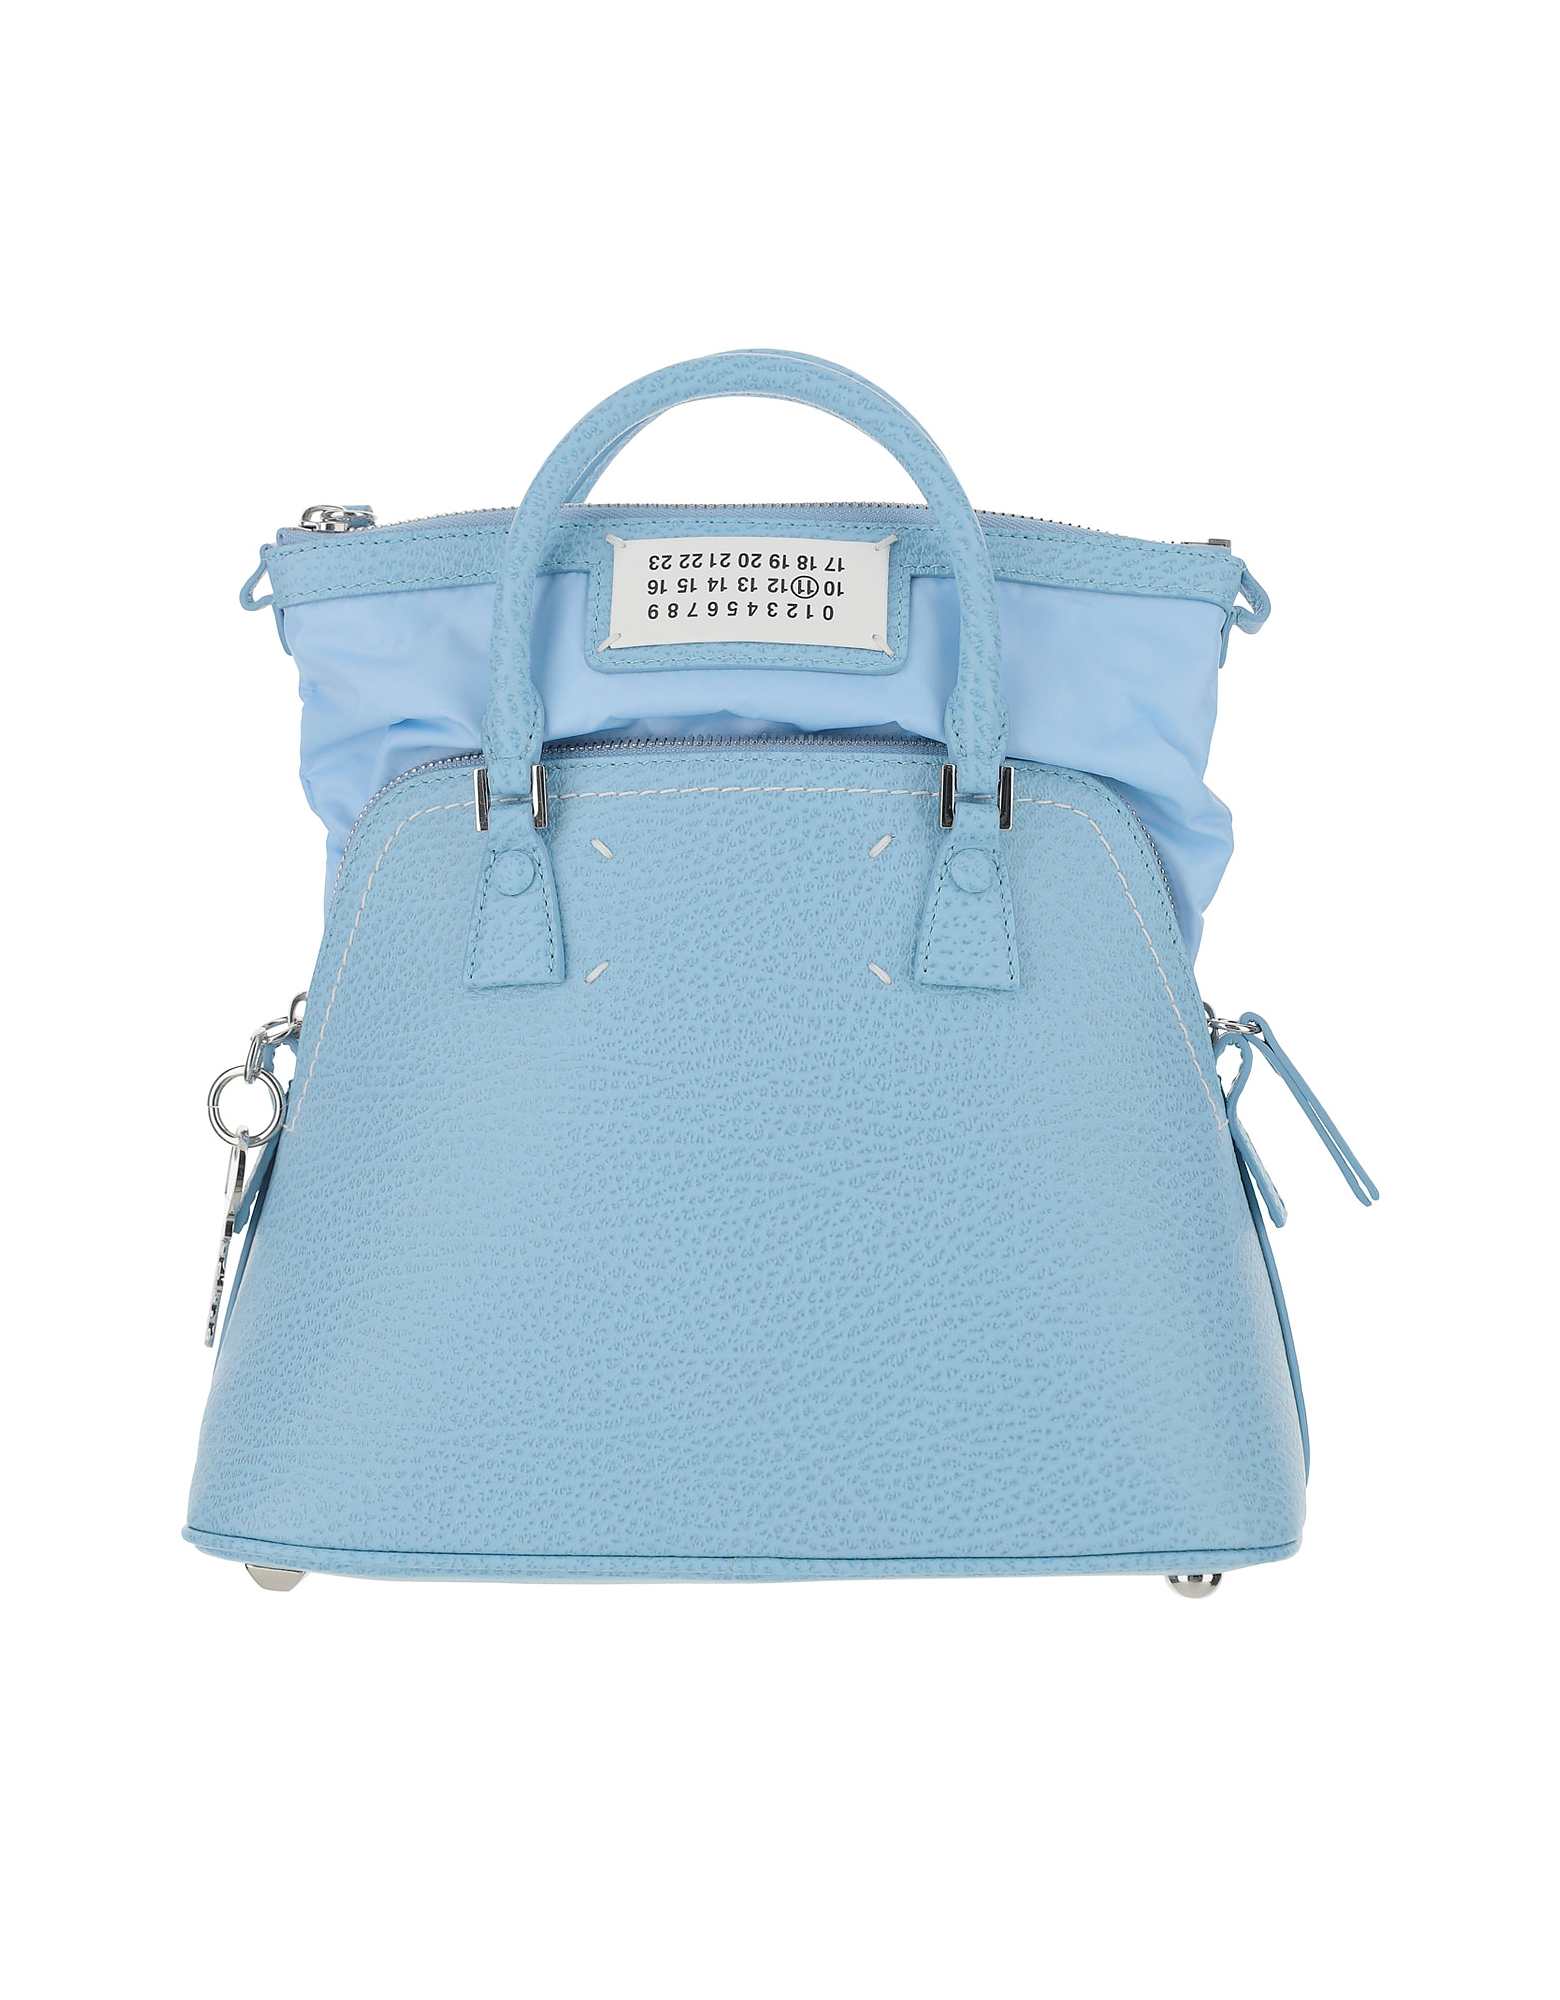 Maison Margiela Designer Handbags, Light Blue Leather and Fabric 5AC Bag